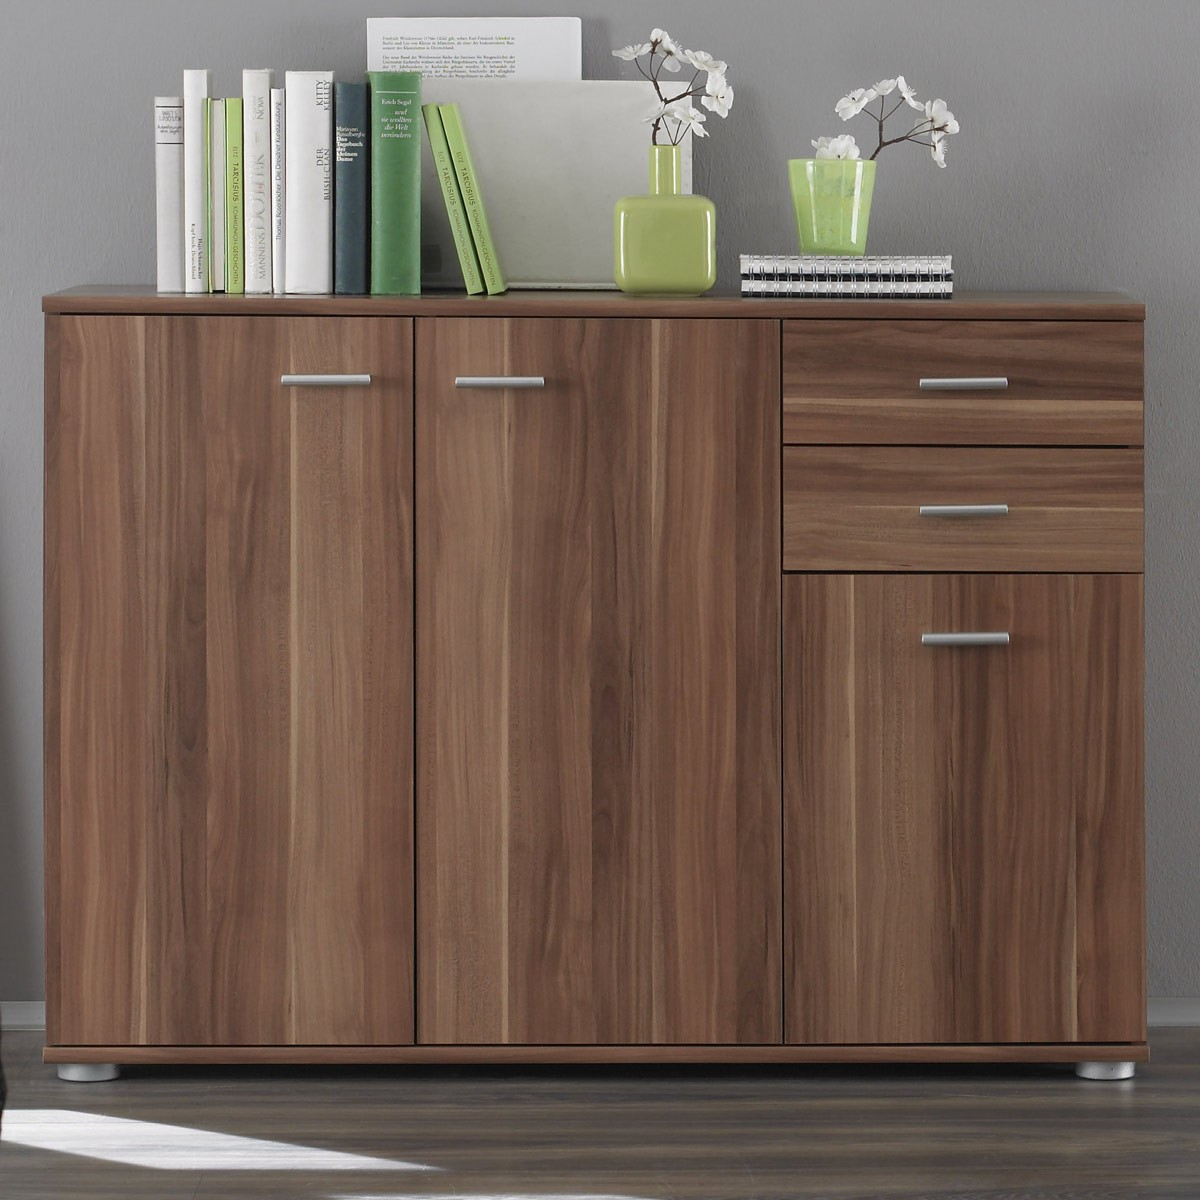 Sideboard baltimore nussbaum finest sideboard nussbaum for Sideboard hochglanz